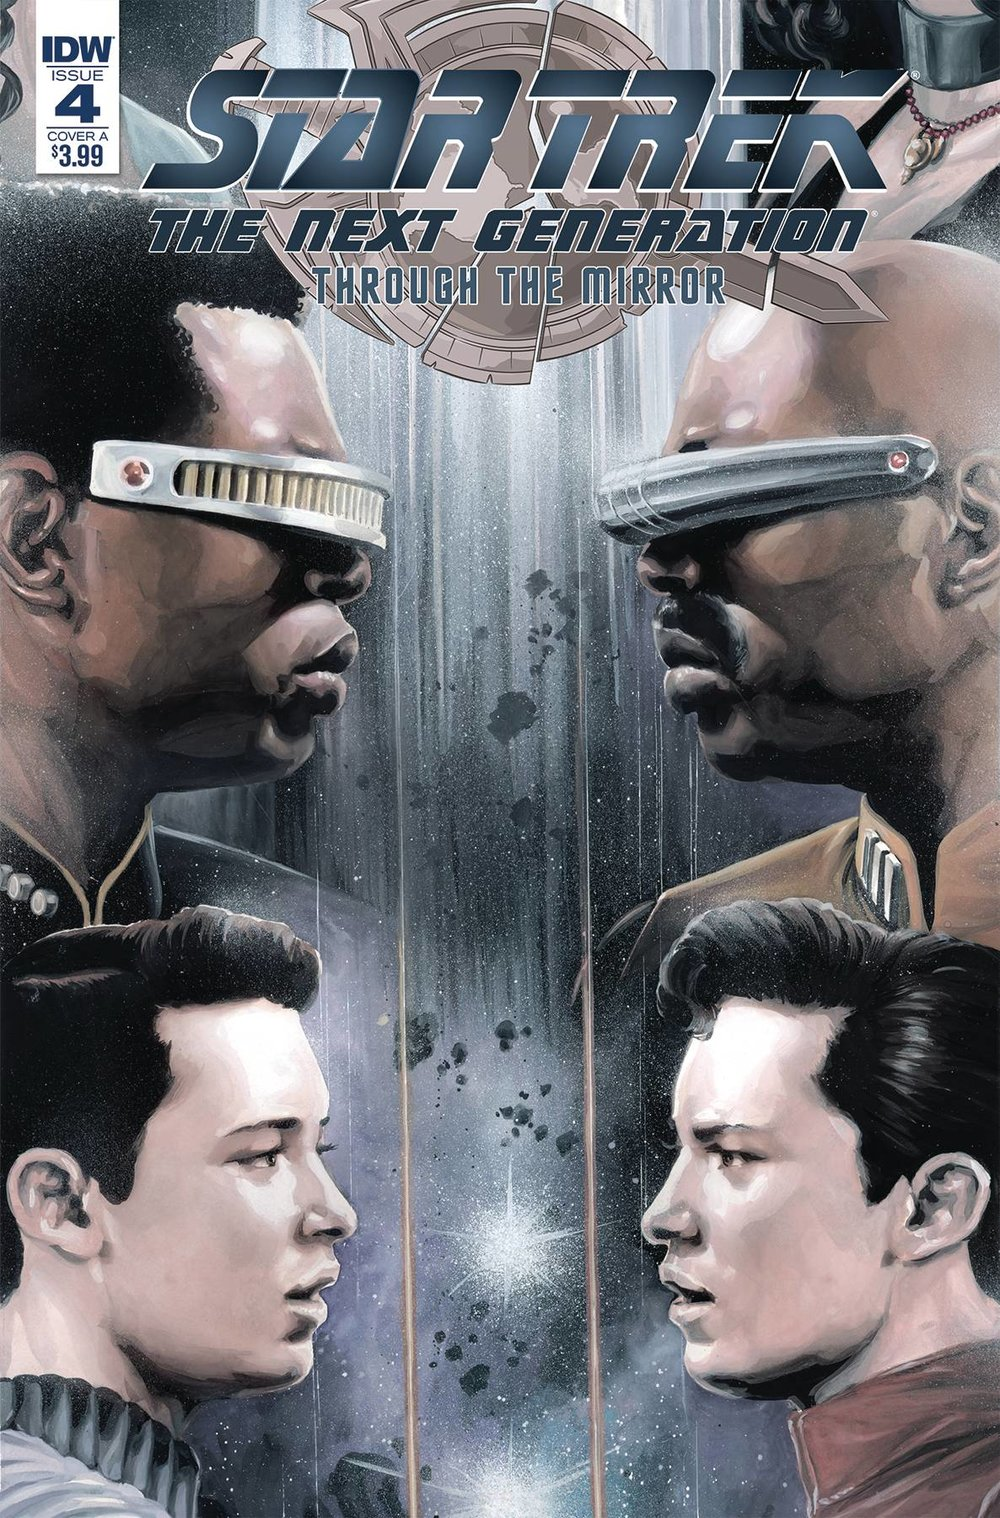 STAR TREK TNG THROUGH THE MIRROR 4 CVR A WOODWARD.jpg